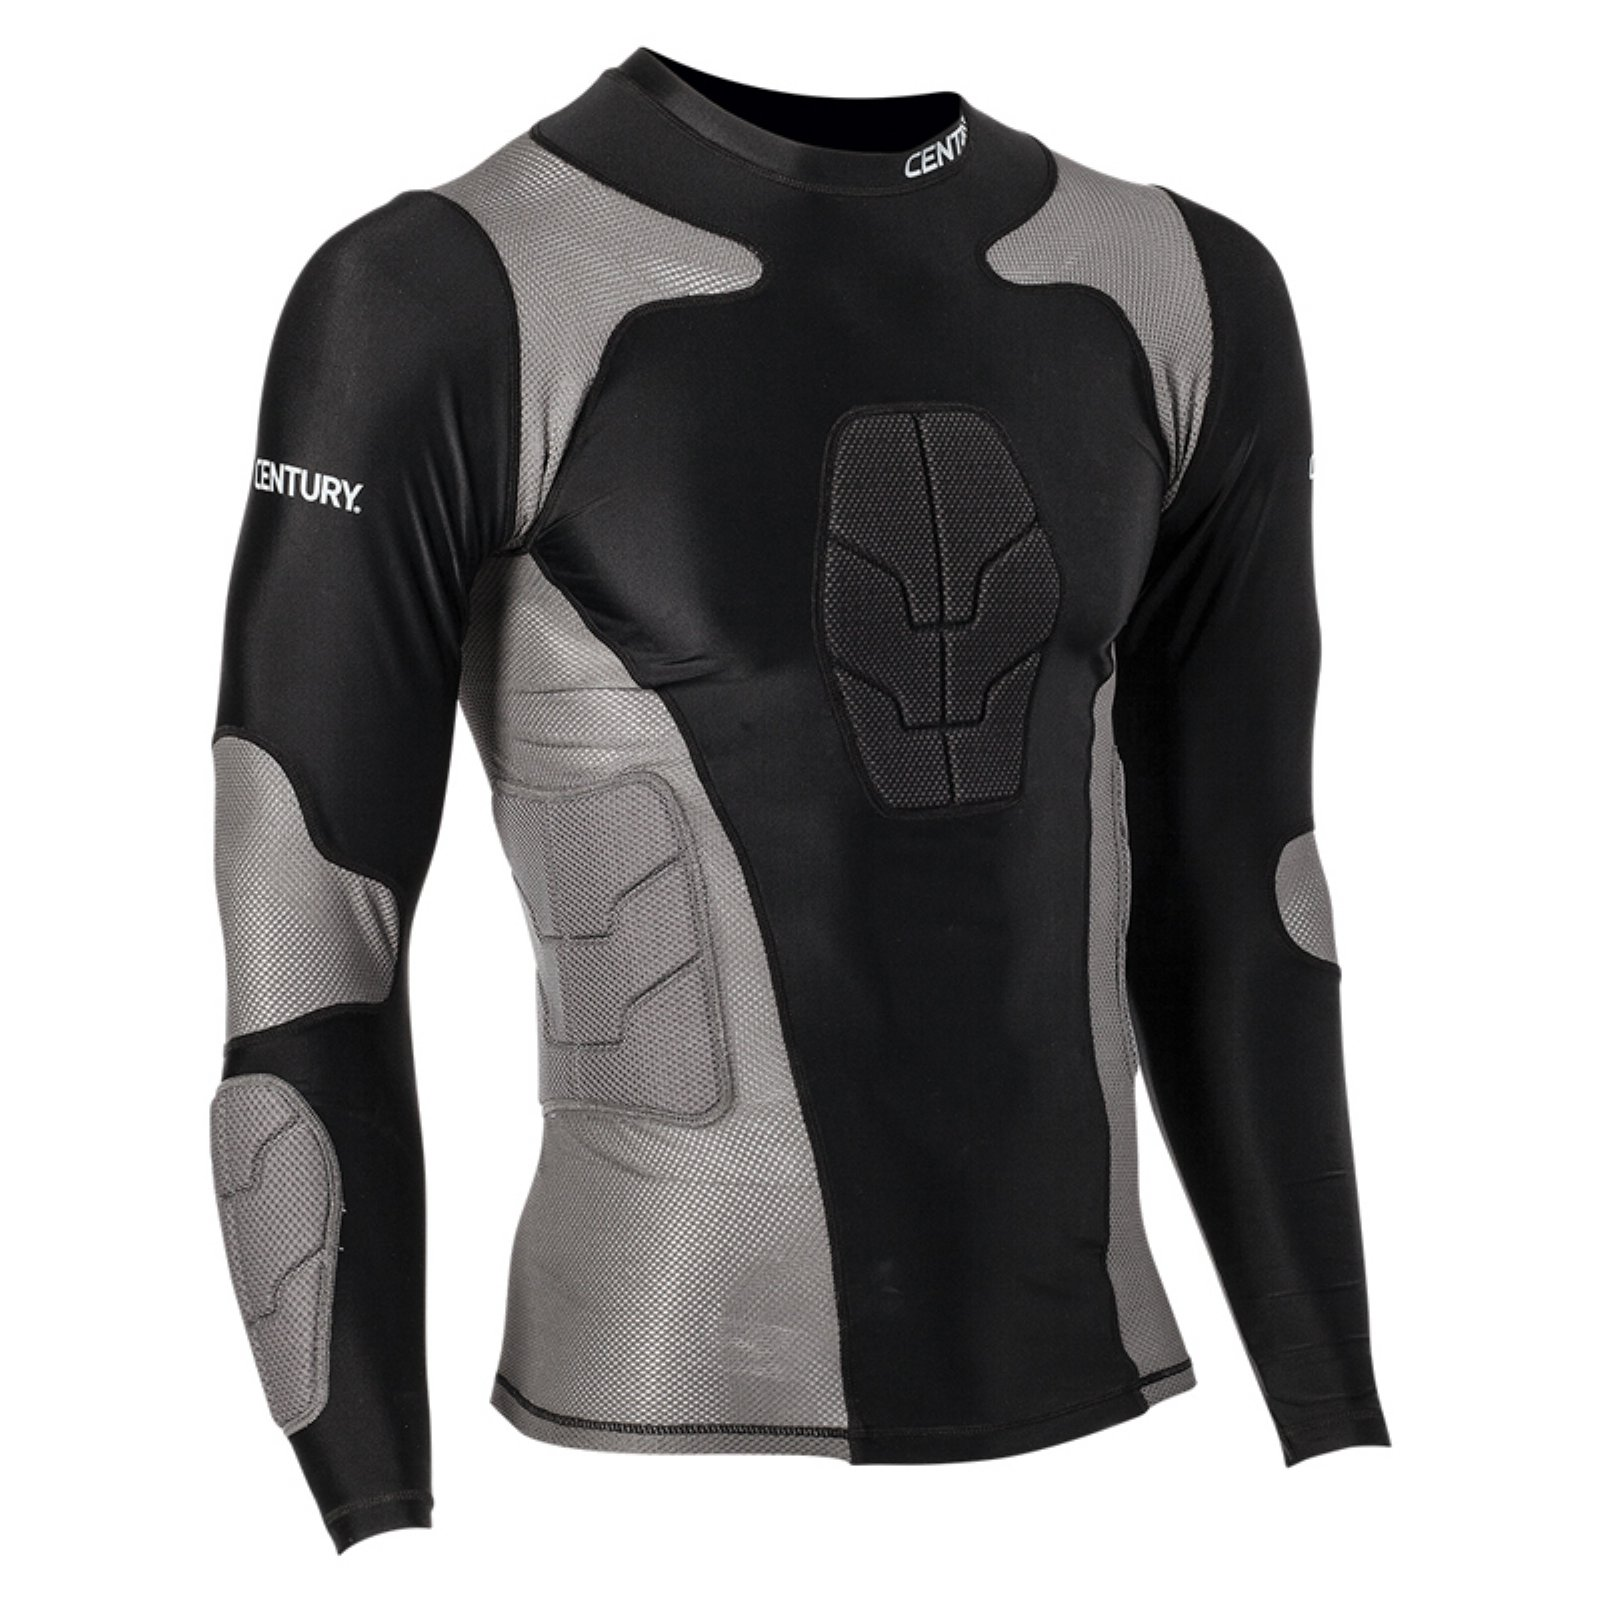 Century Long Sleeve Padded Youth Compression Shirt